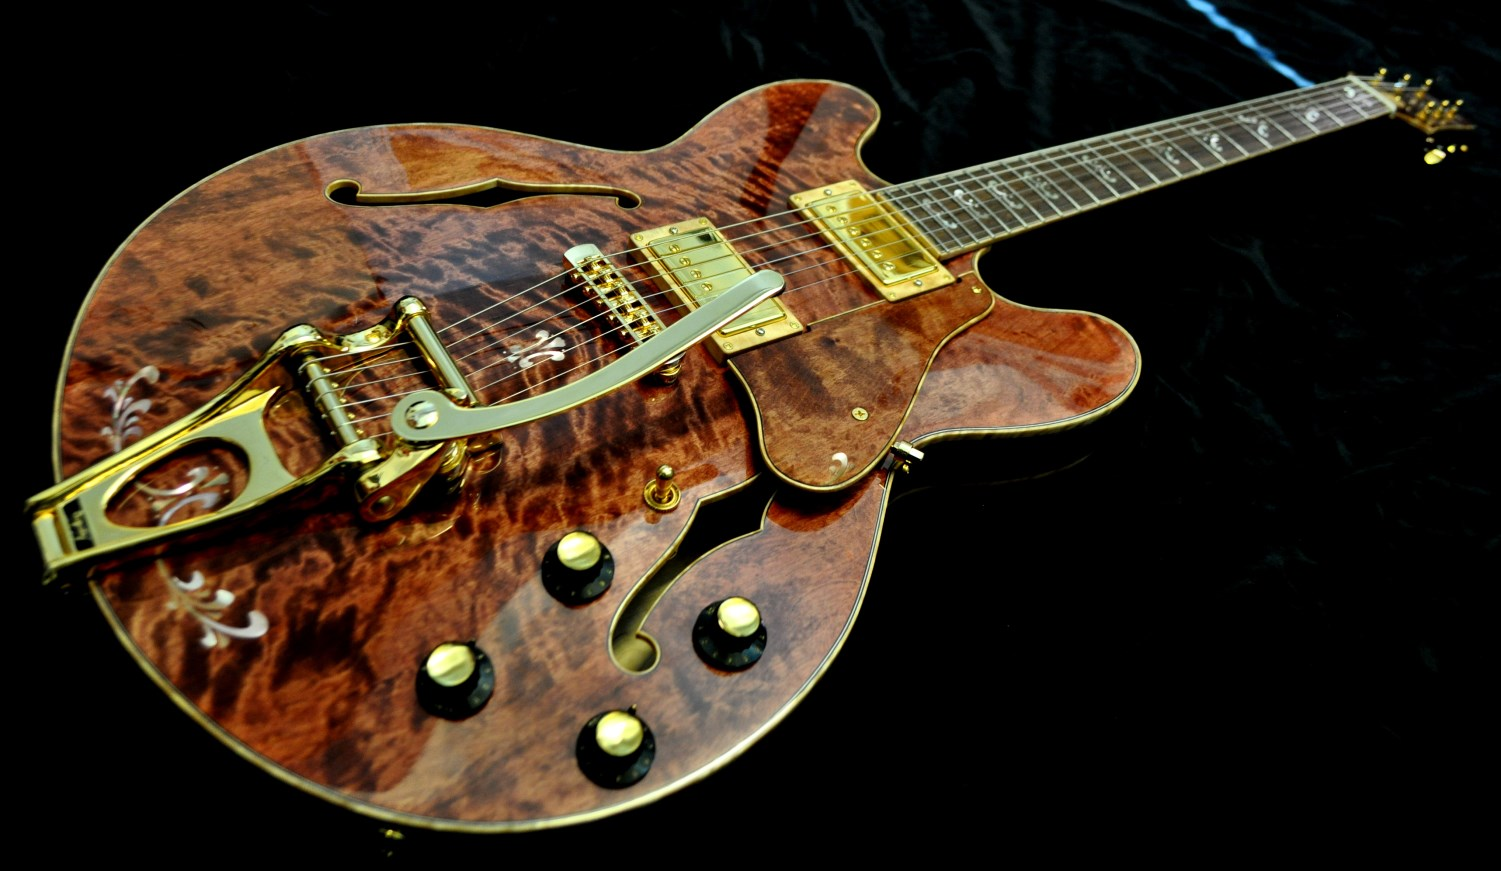 NWS Semi Hollow, Birch